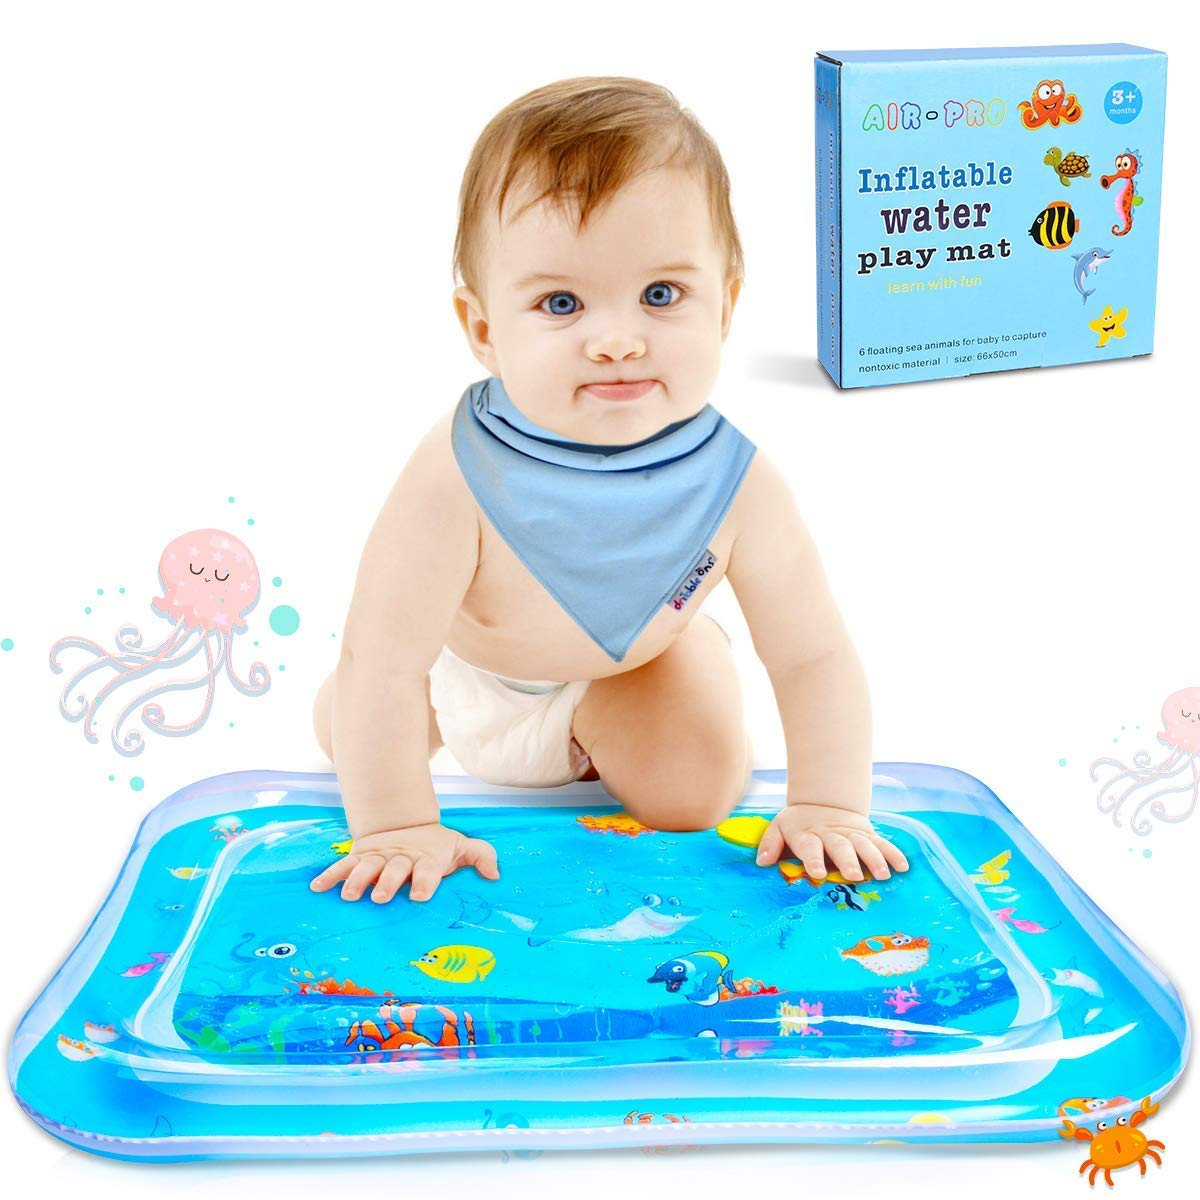 LEEHUR Baby Inflatable Tummy Time Premium Water Play Mat Newborns Infants Toddlers Summer Cooling Toys Early Development Activity Center Stimulation Growth Blue